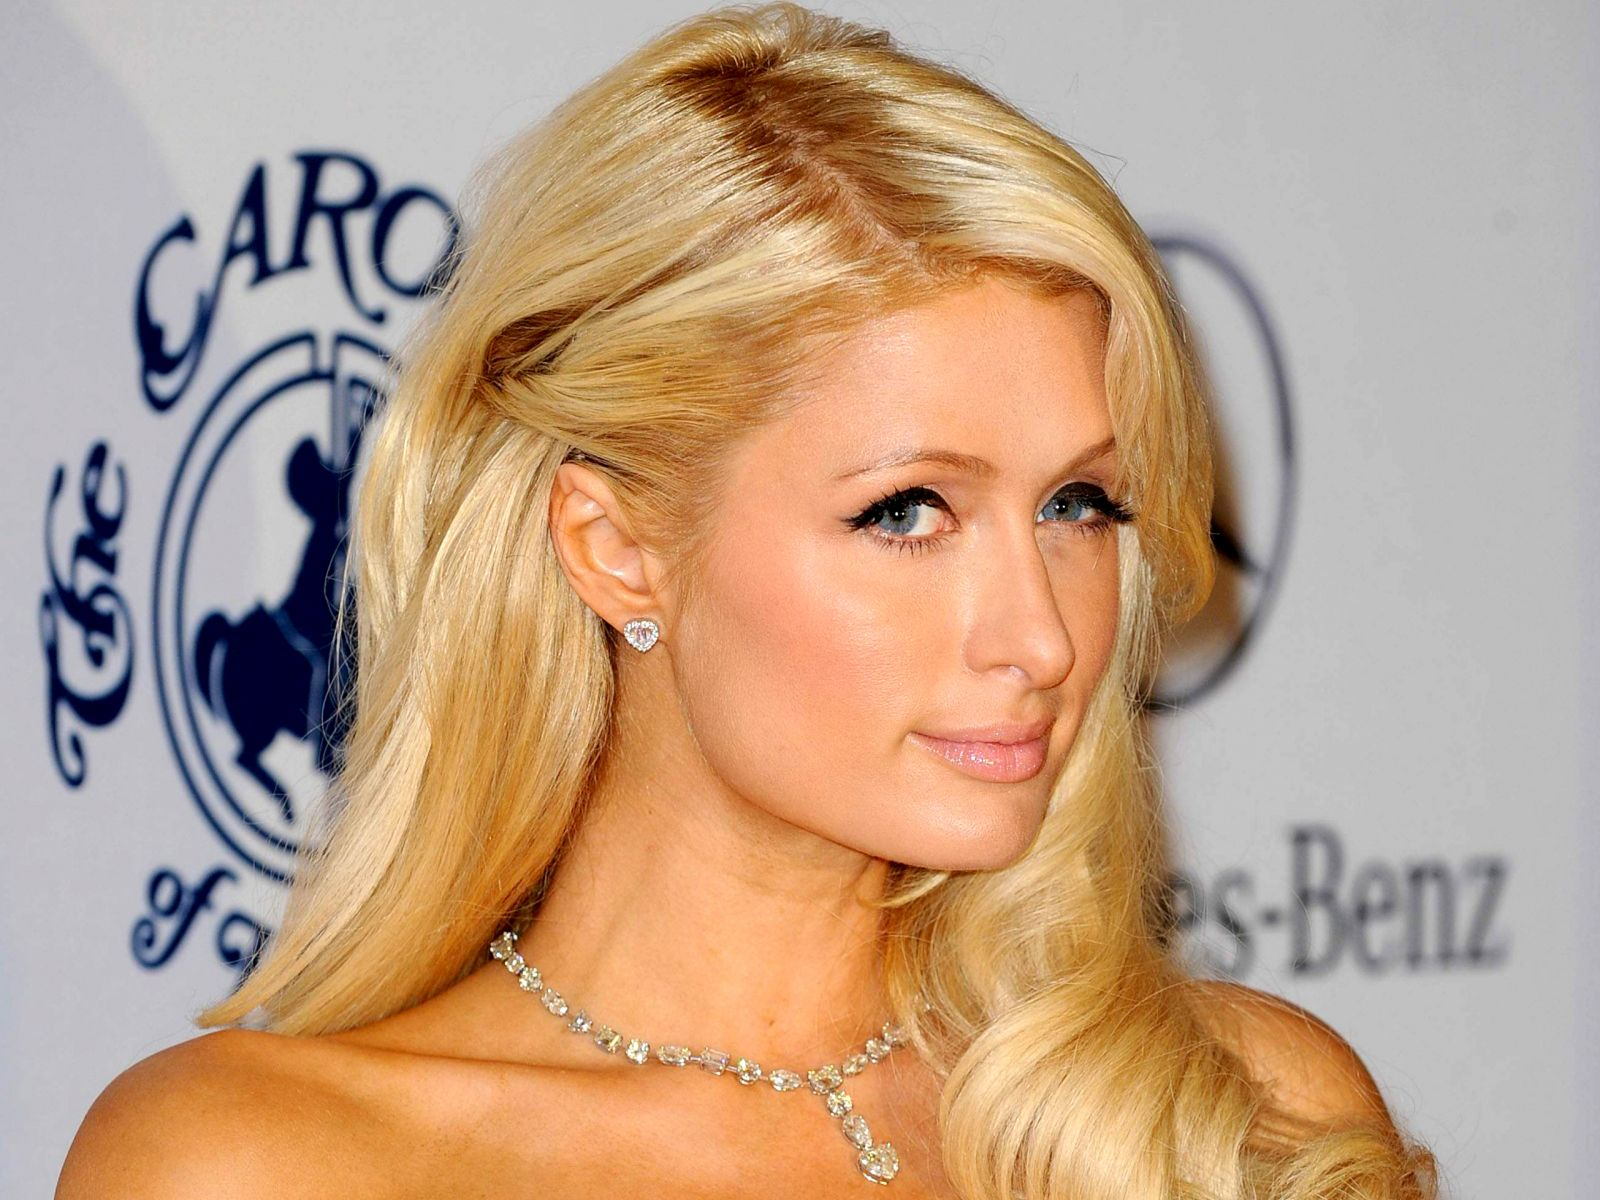 La sextape excitante de Paris Hilton - Streaming Sex